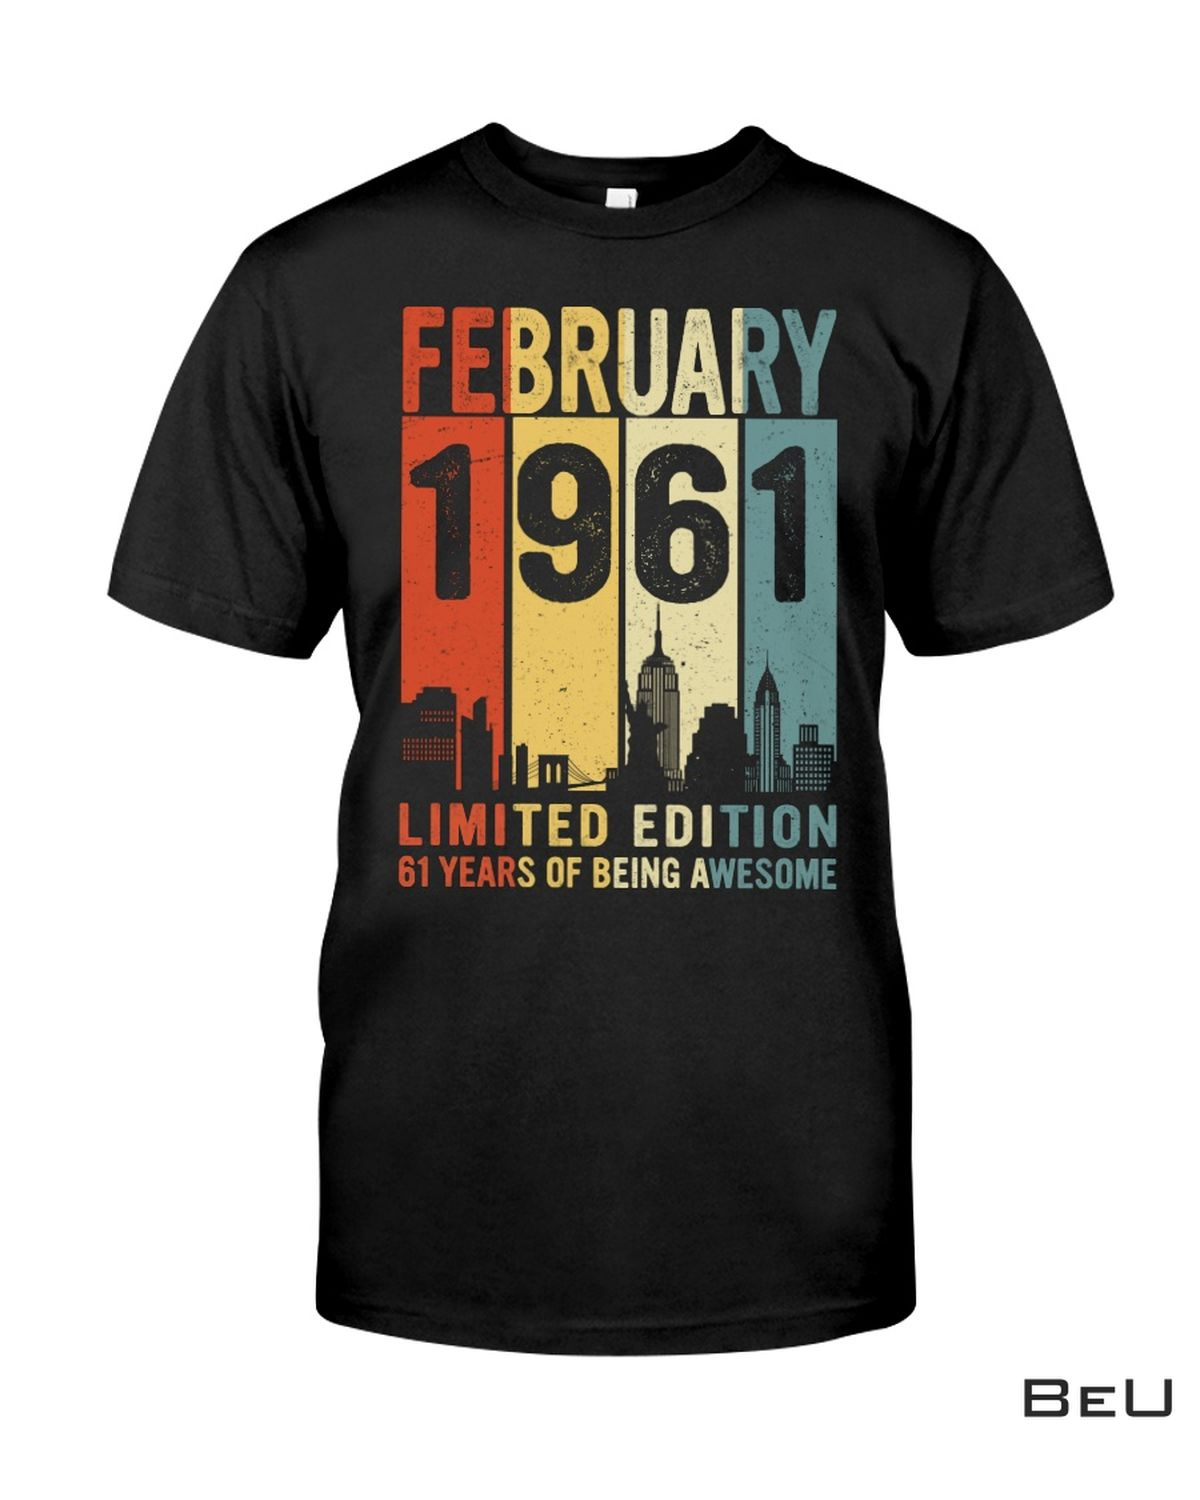 February 1961 Limited Edition 61 Years Of Being Awesome Shirt, hoodie, tank top